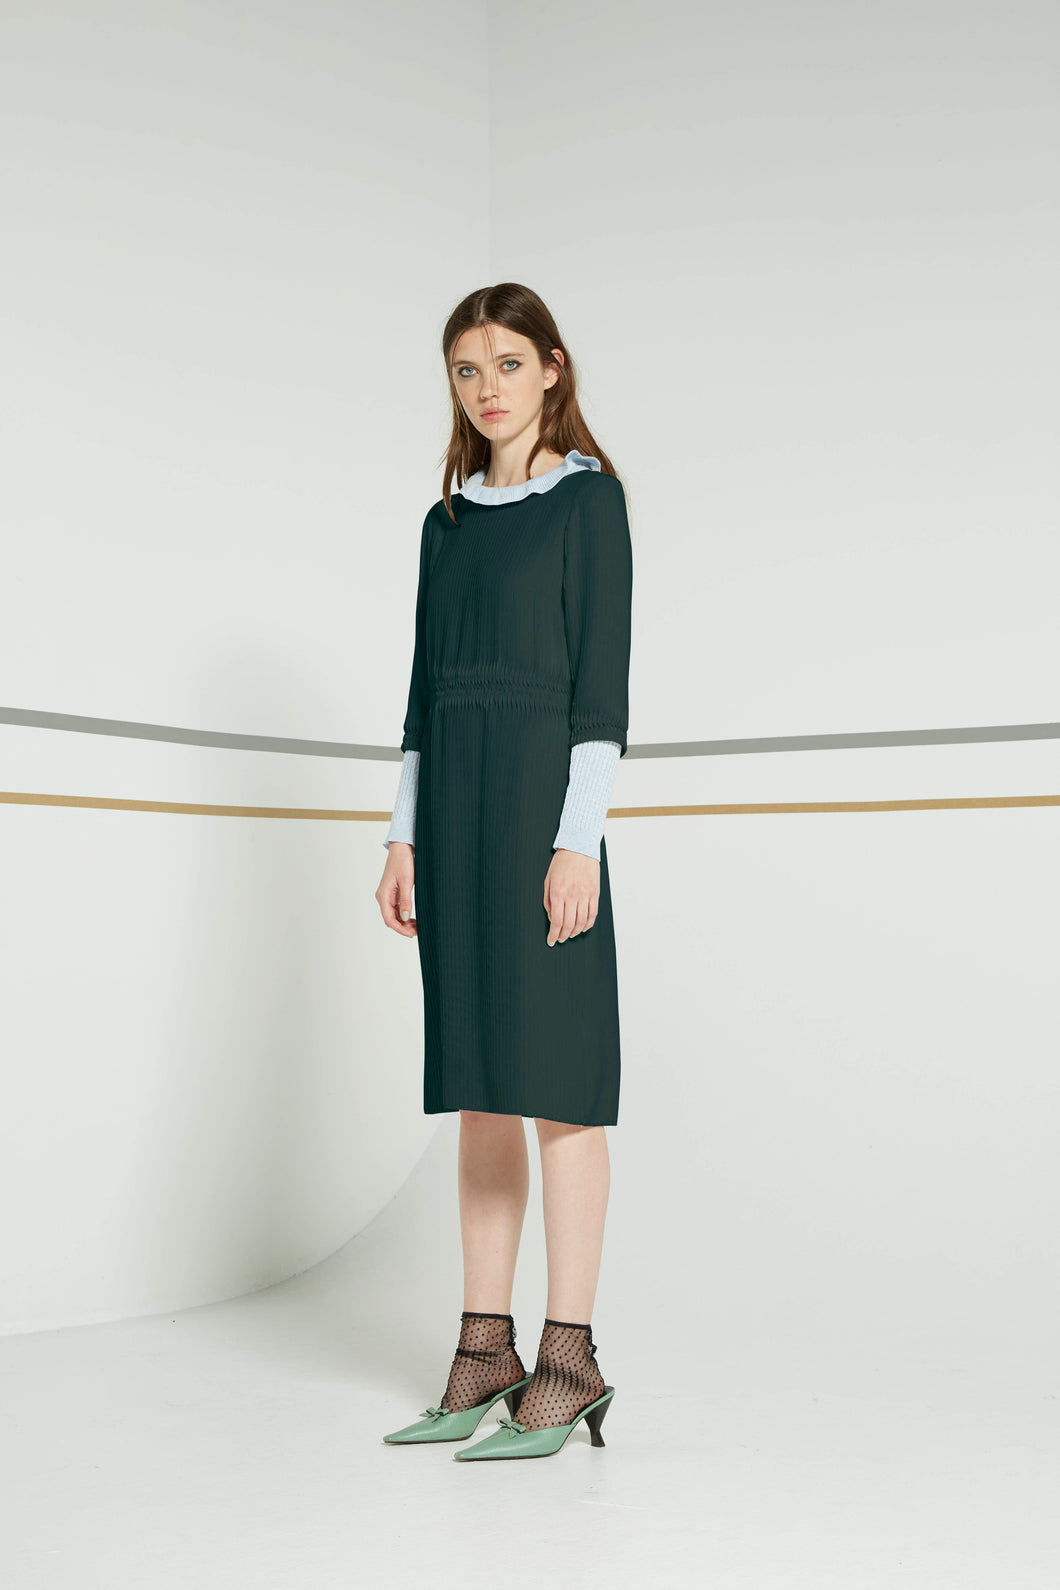 Sessile dress, pine